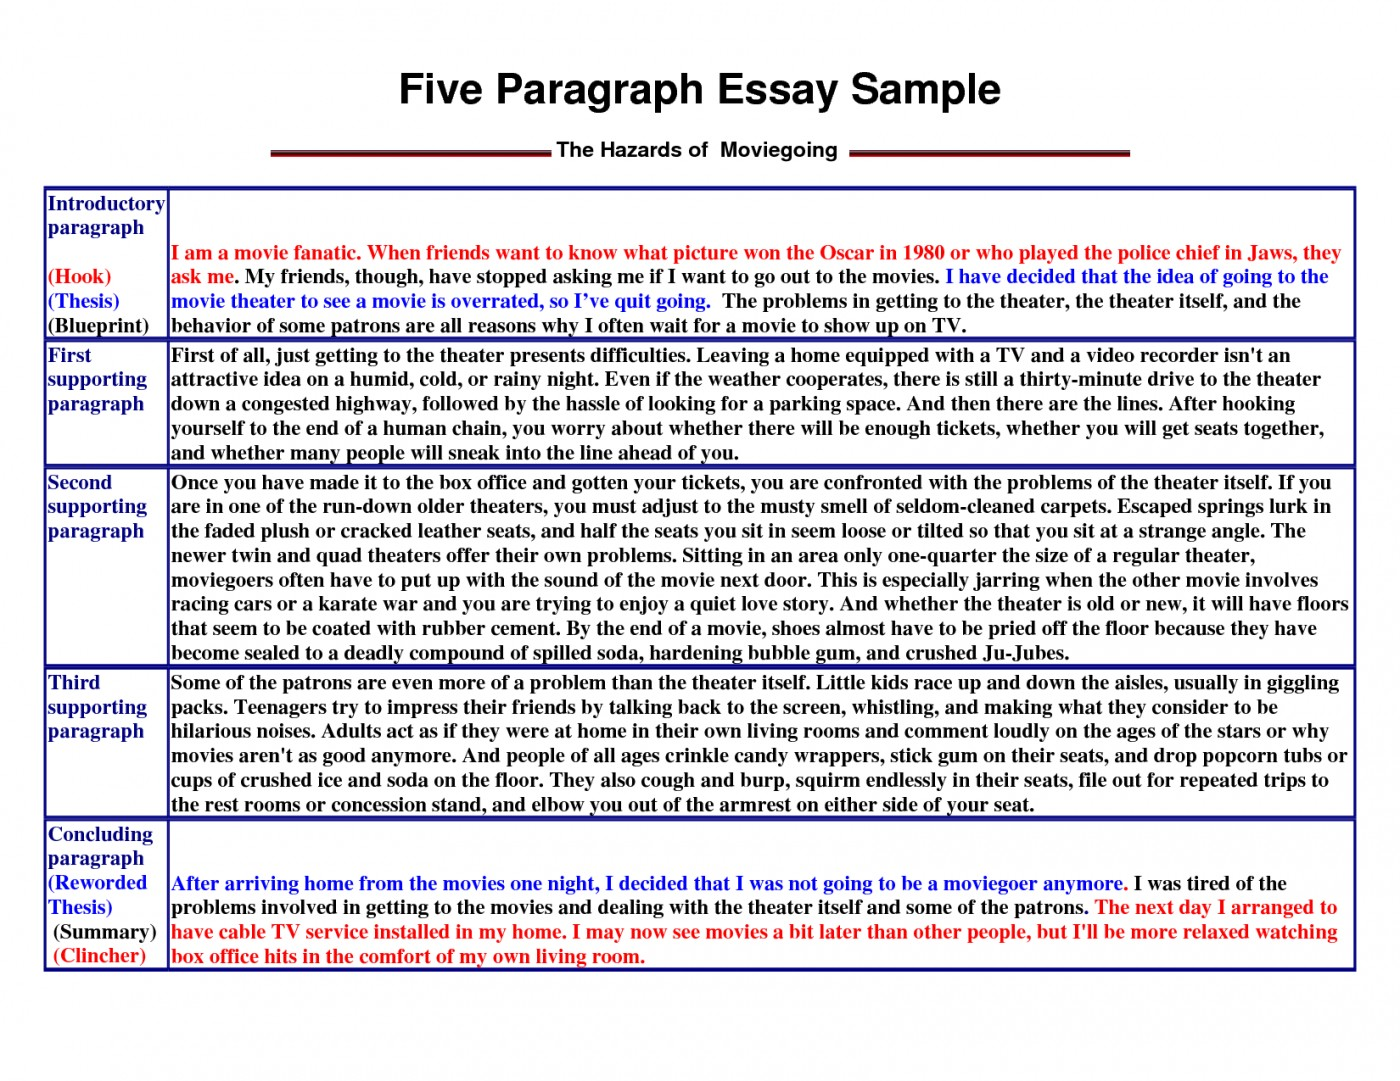 016 Paragraph Essay Singular 5 Template Graphic Organizer Middle School Pdf College 1400